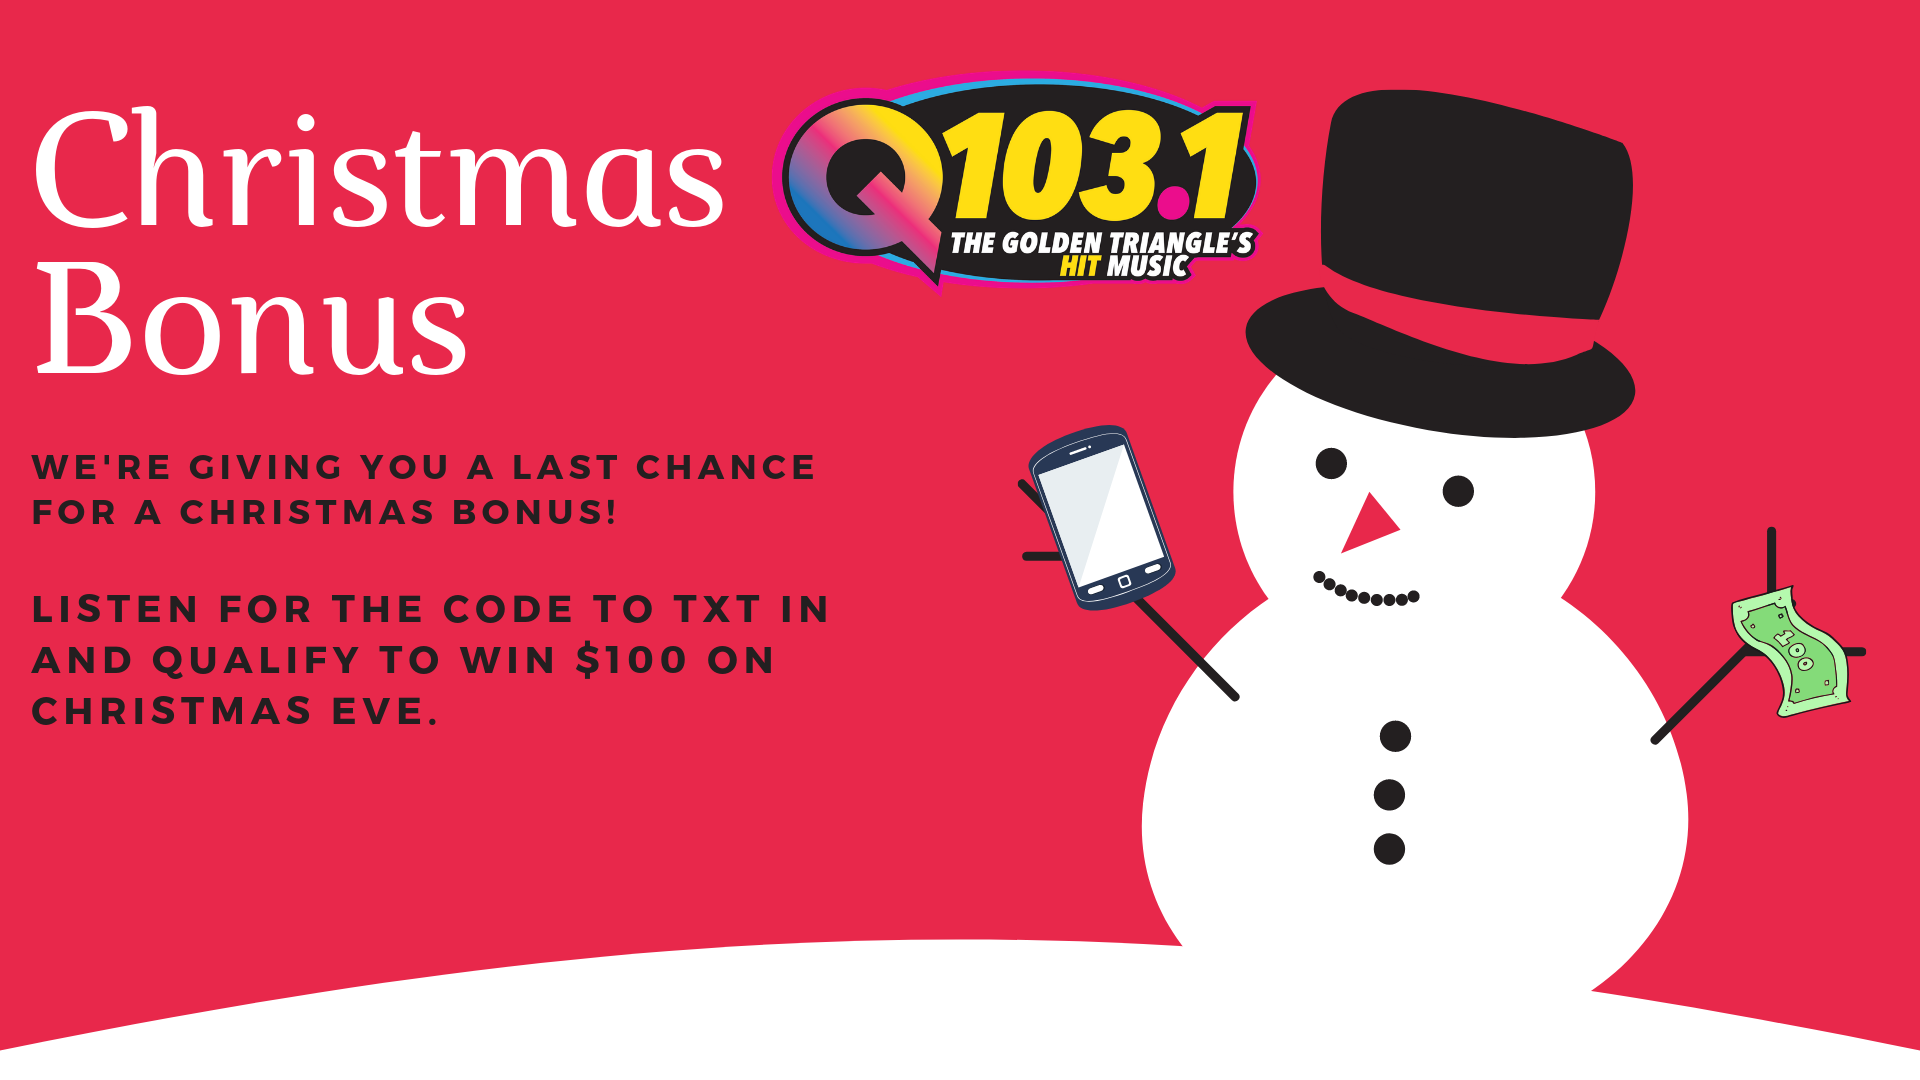 Christmas Bonus-TXT to Win